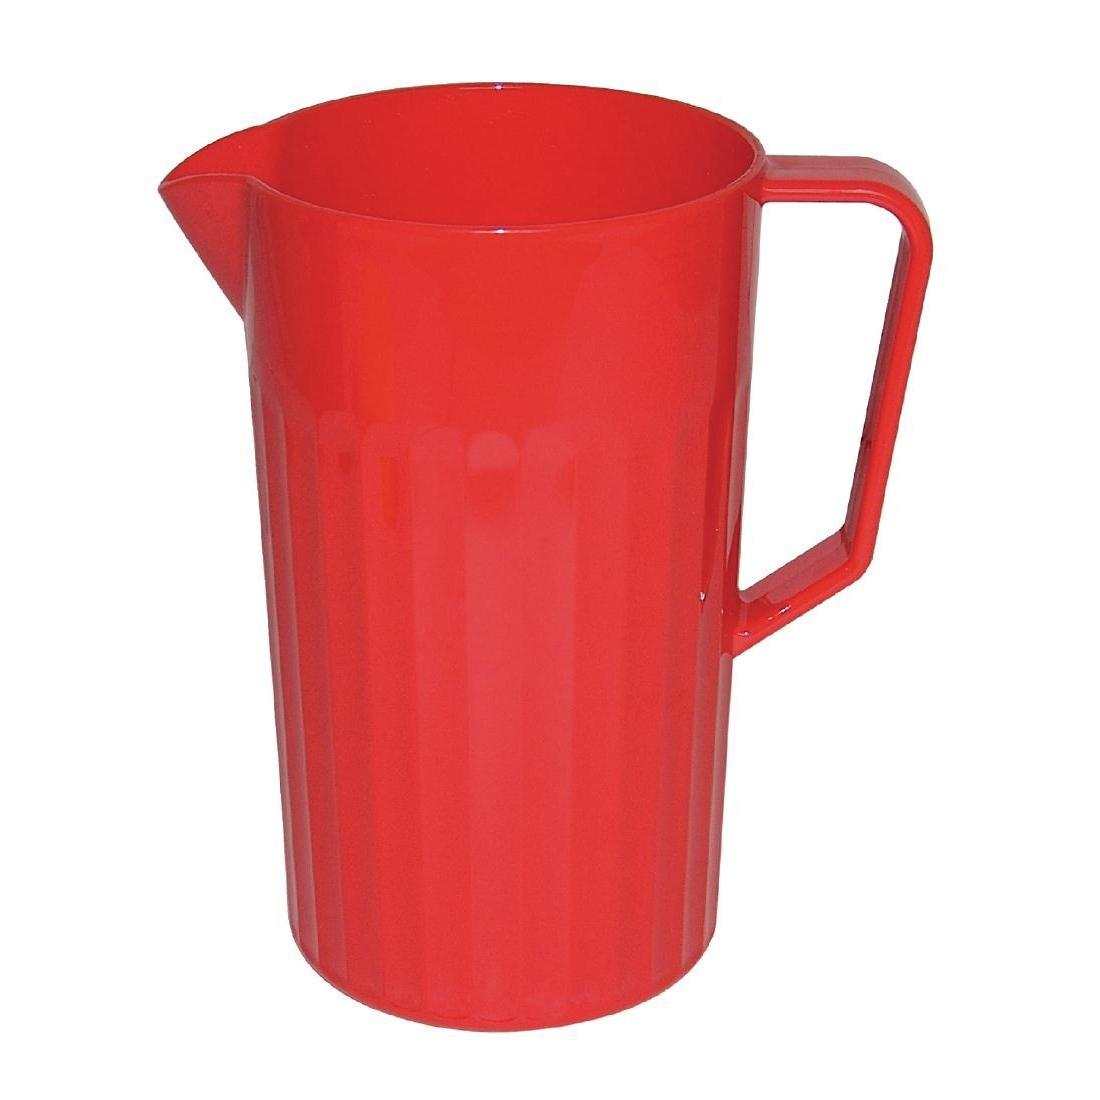 Kristallon Polycarbonate Jug Red 1.4Ltr - Each - CE281